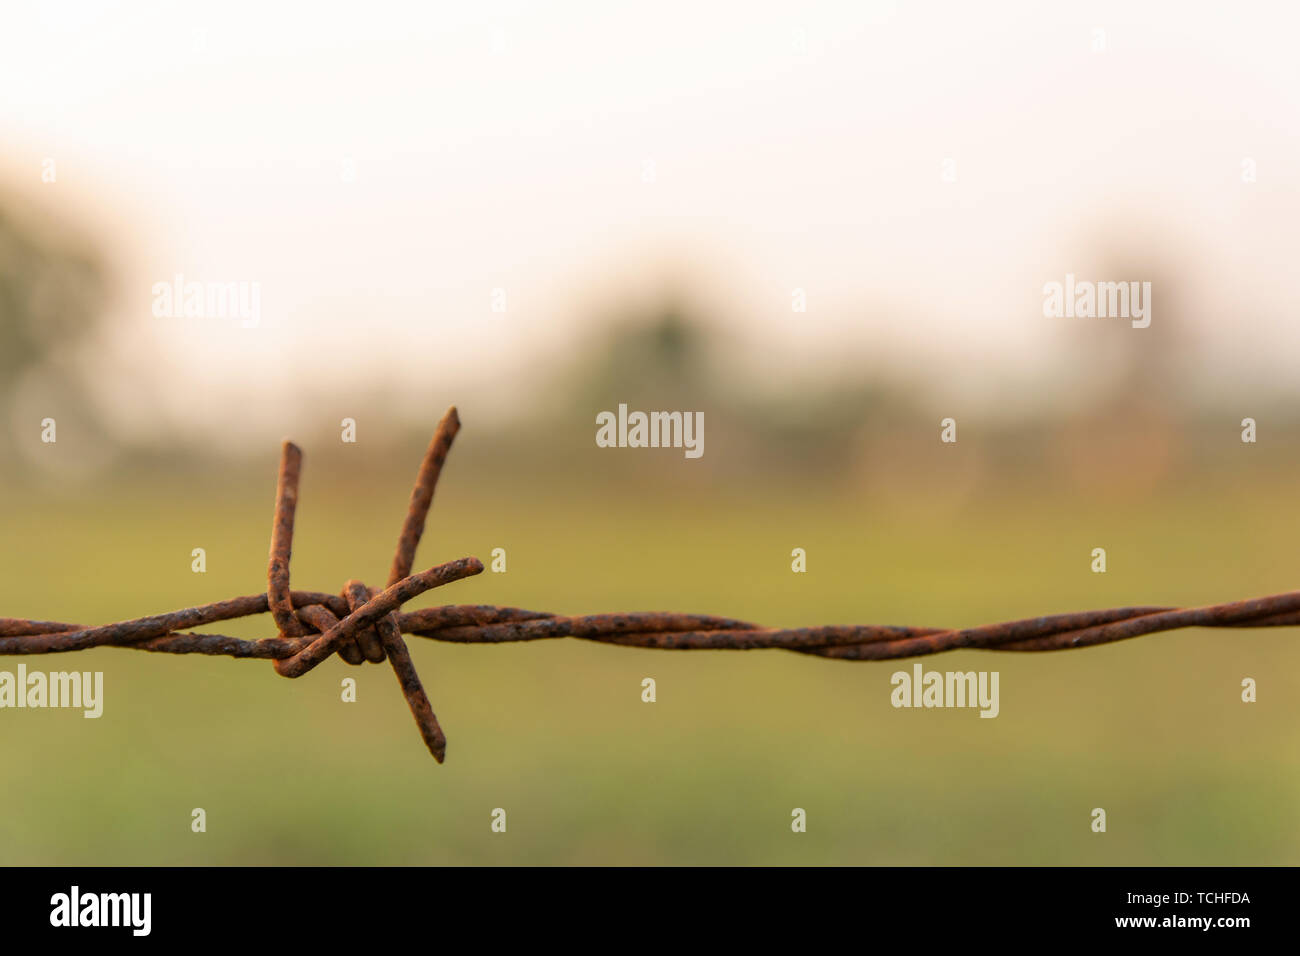 Barbed wire with blur nature background with copy space - Stock Image